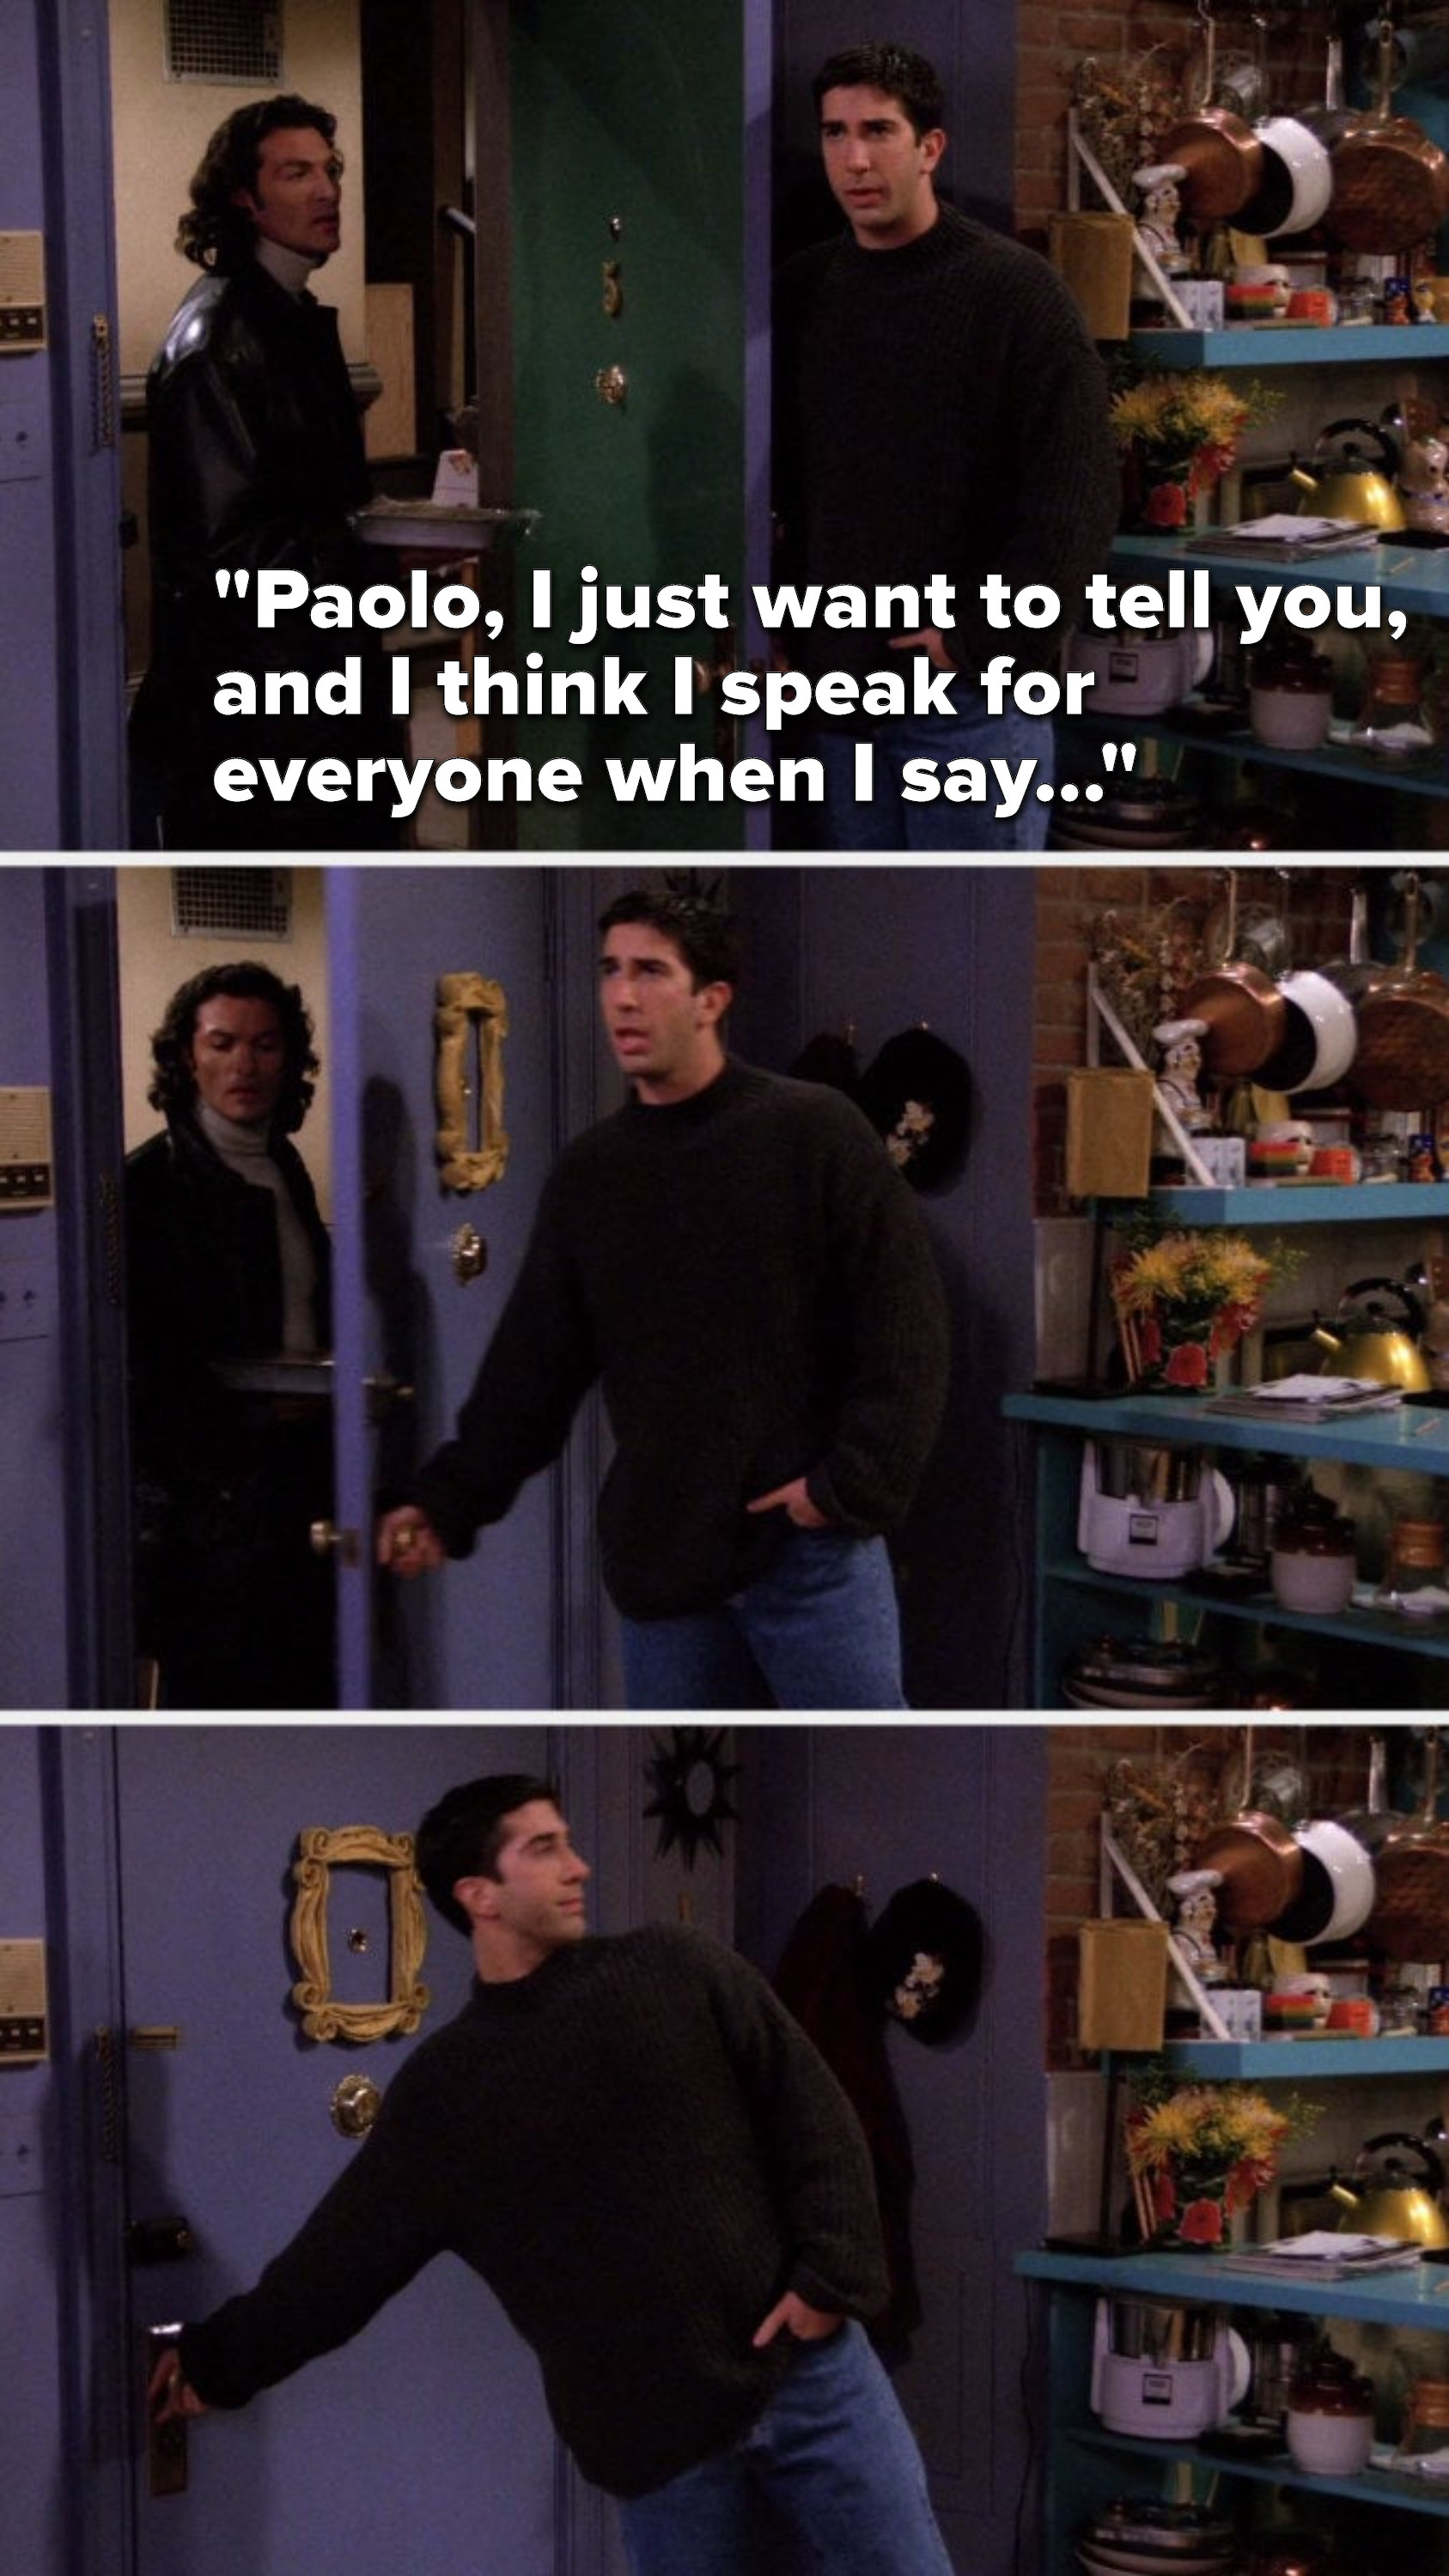 """Ross says, """"Paolo, I just want to tell you, and I think I speak for everyone when I say..."""" and slams the door in Paolo's face"""